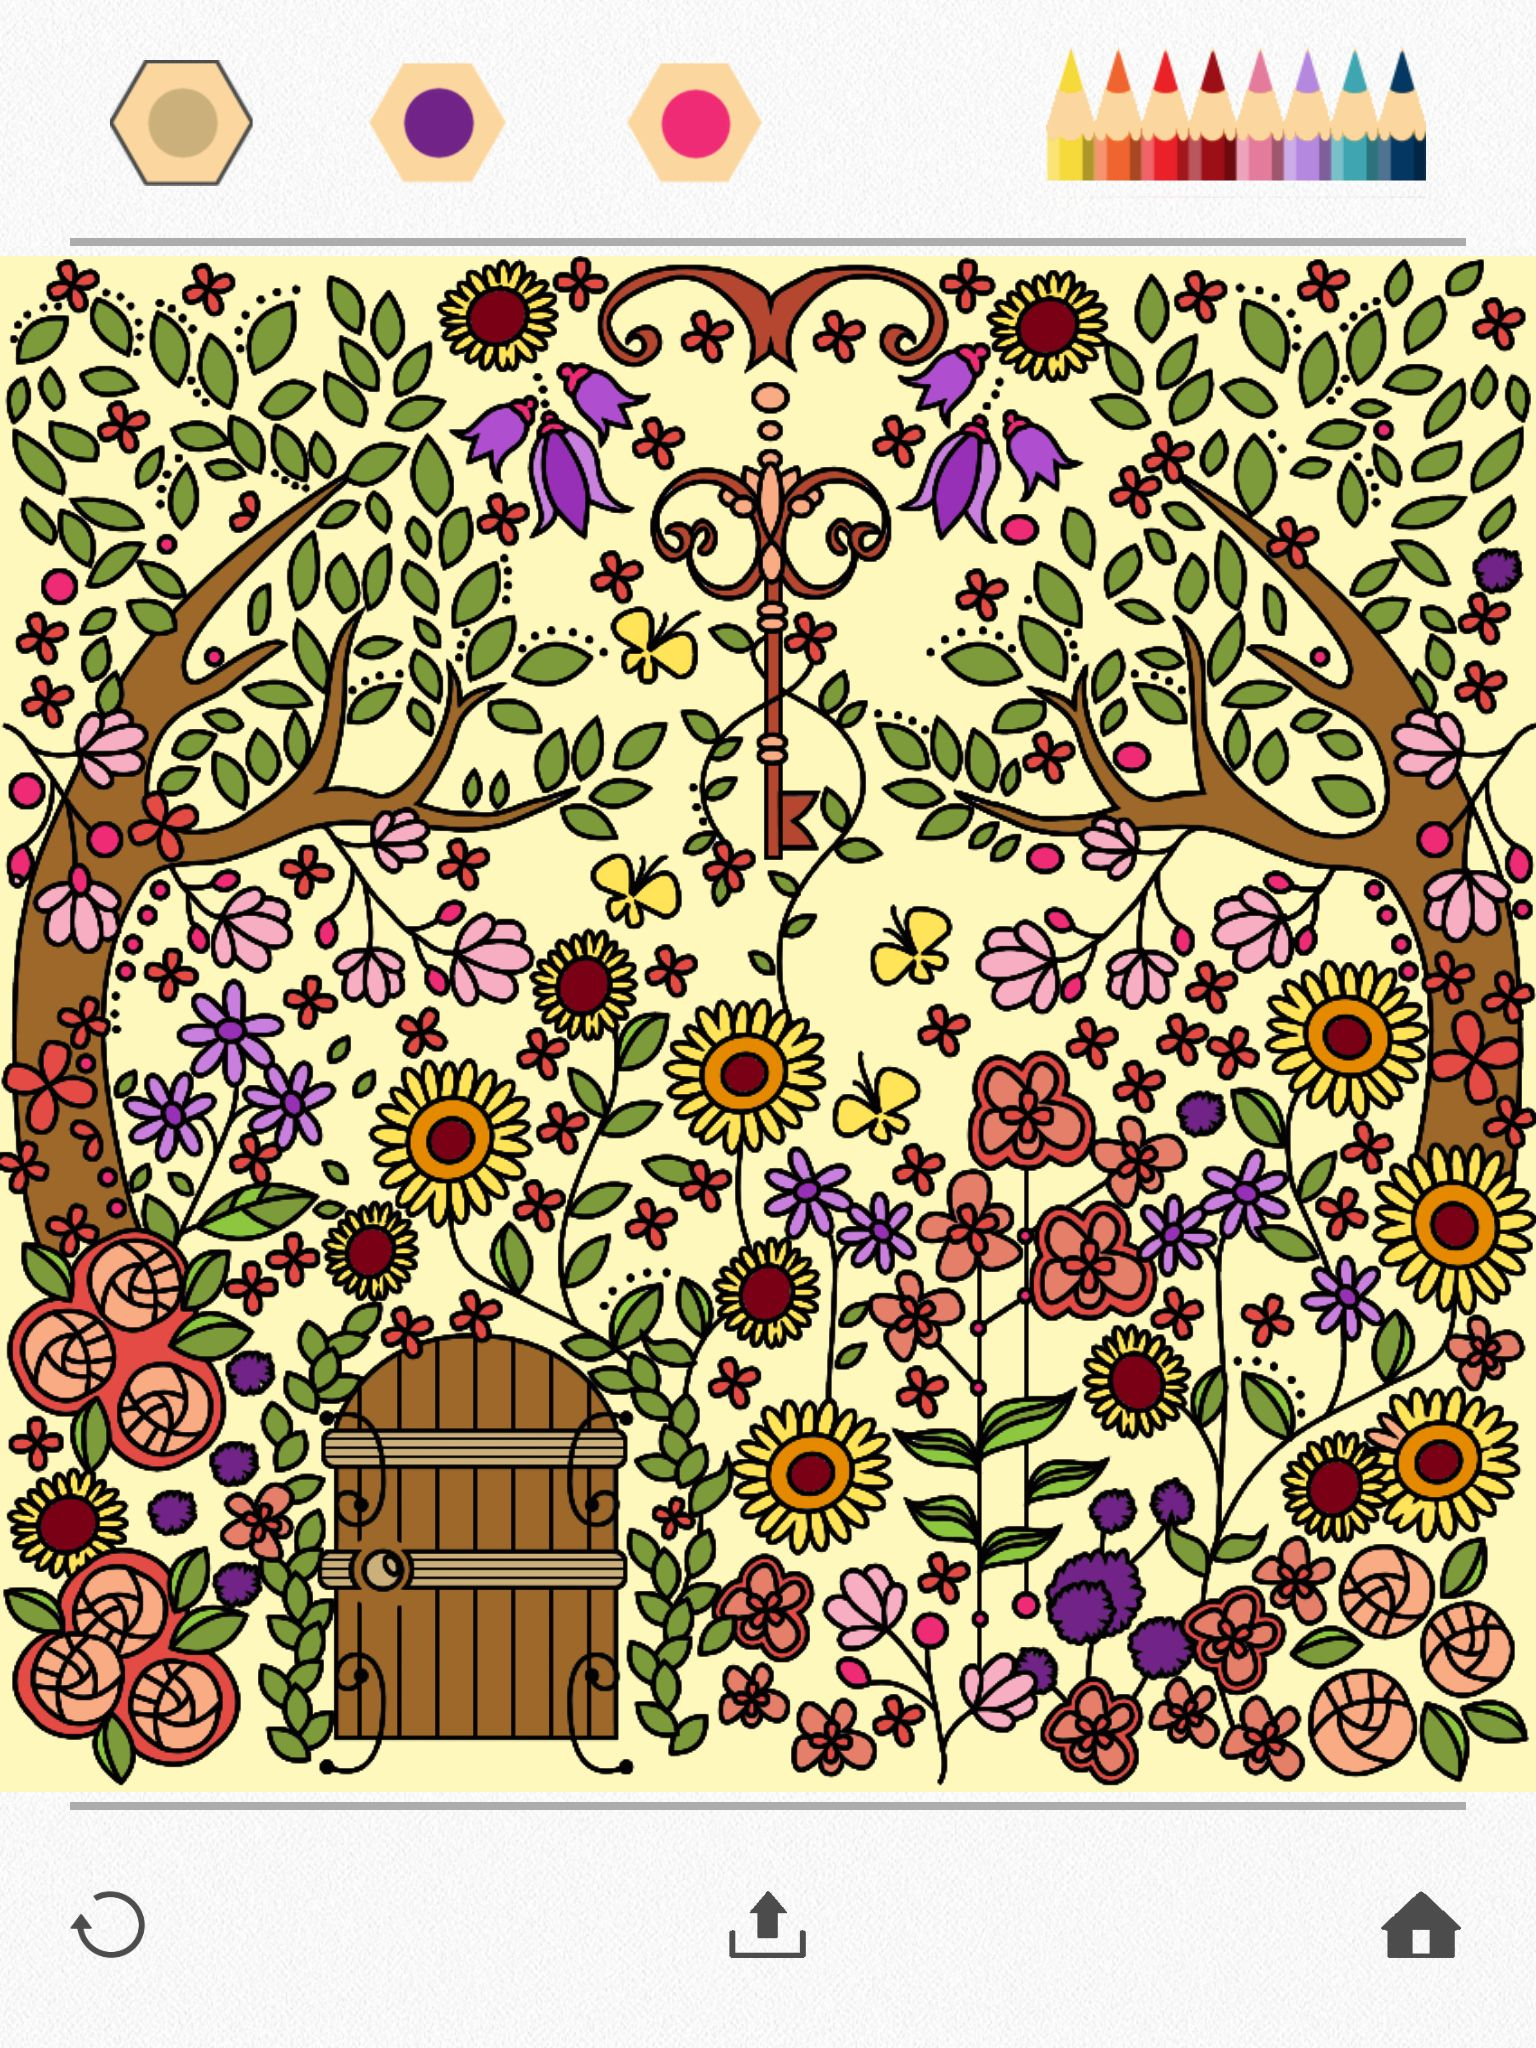 Color a beautiful garden using colorfy online coloring book for color a beautiful garden using colorfy online coloring book for adults download it for sisterspd